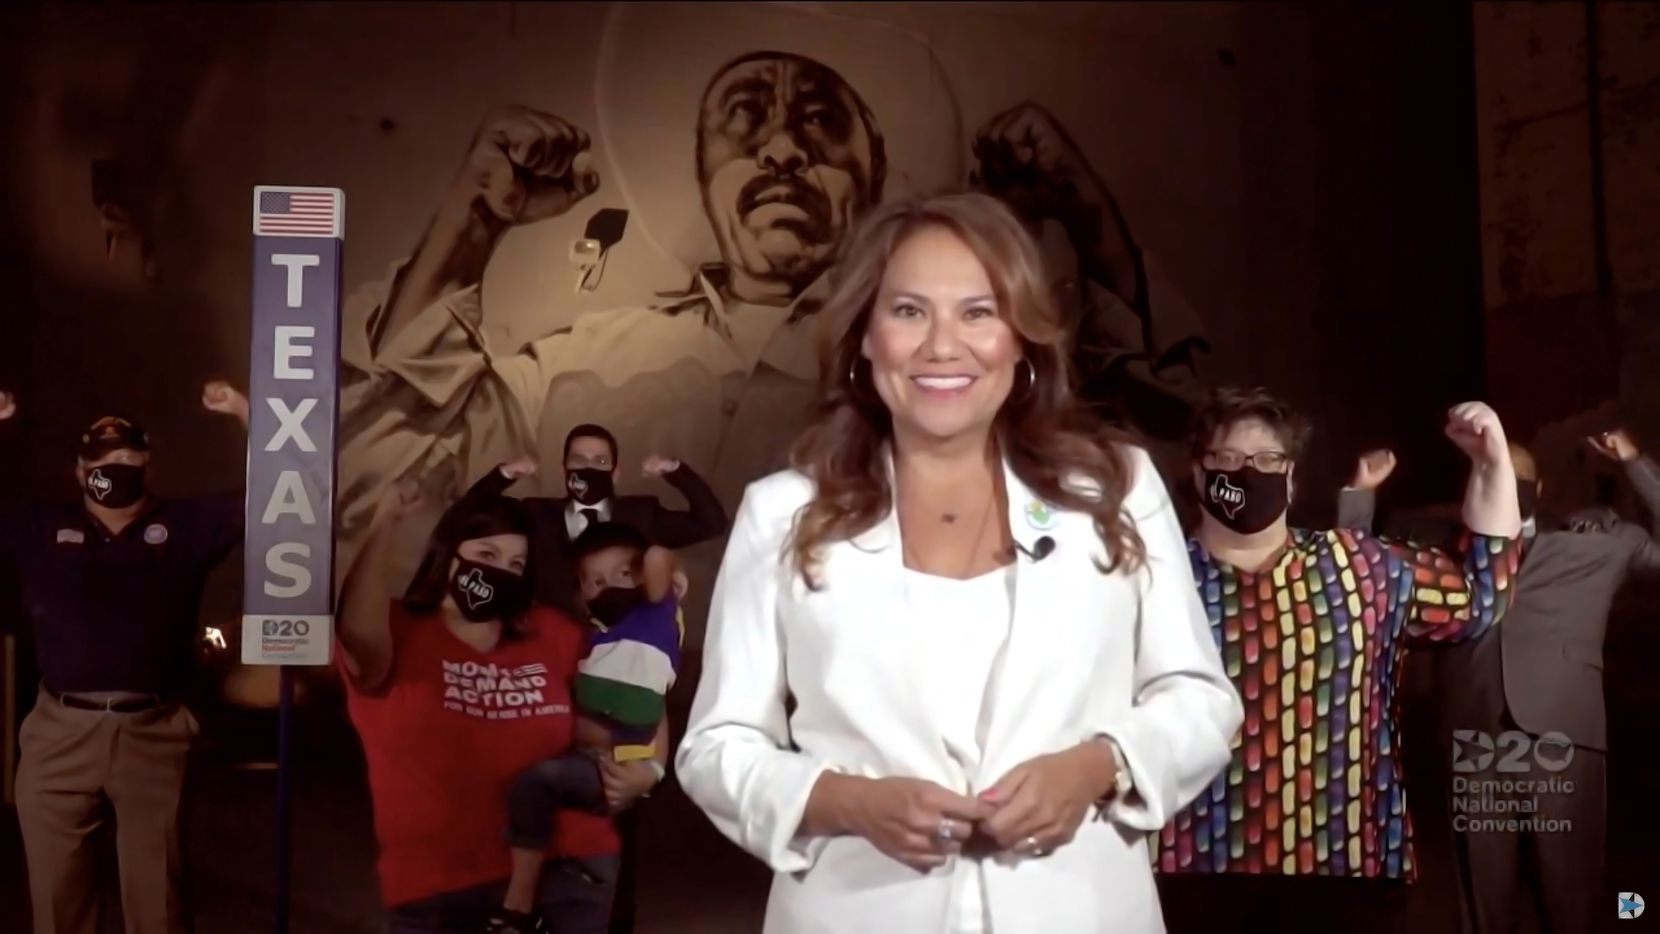 """Rep. Veronica Escobar, D-El Paso, announces the Texas delegates during the Democratic National Convention on August 18, 2020: """"With one abstention, the great state of Texas casts 98 votes for Bernie Sanders and 161 votes for our next president, Joe Biden."""""""